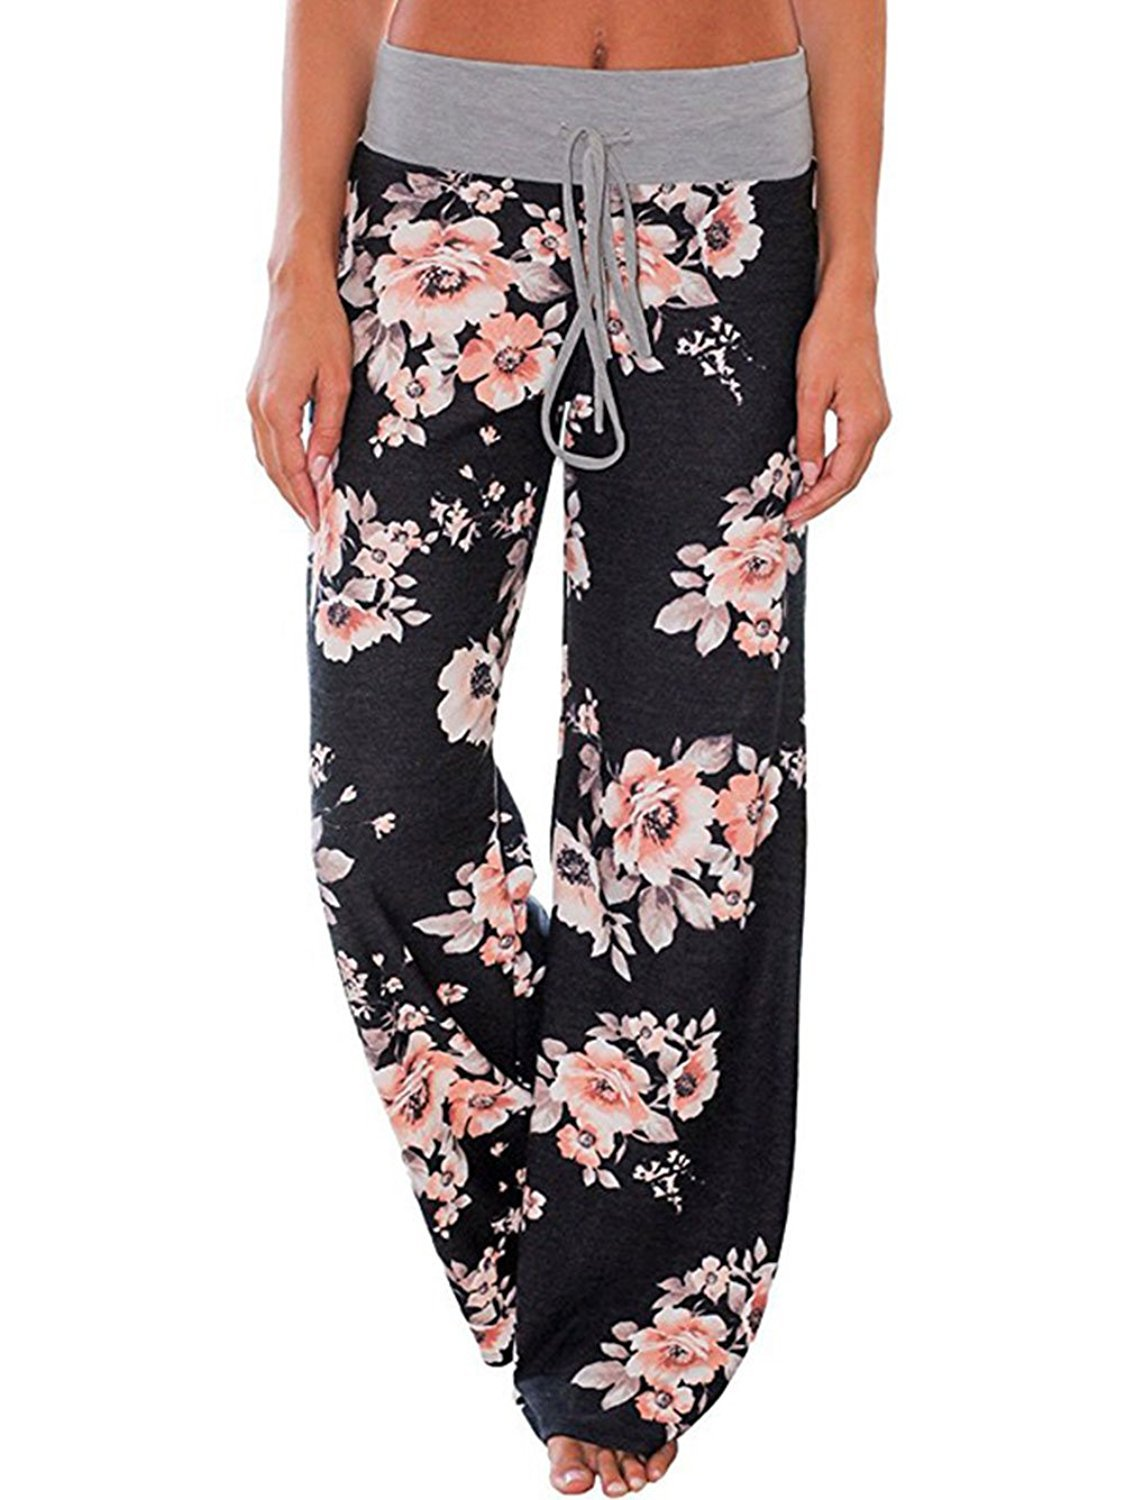 US-straight Women's Floral Print Comfy Stretch Drawstring Palazzo Wide Leg Lounge Pants (L, 0486-Black)